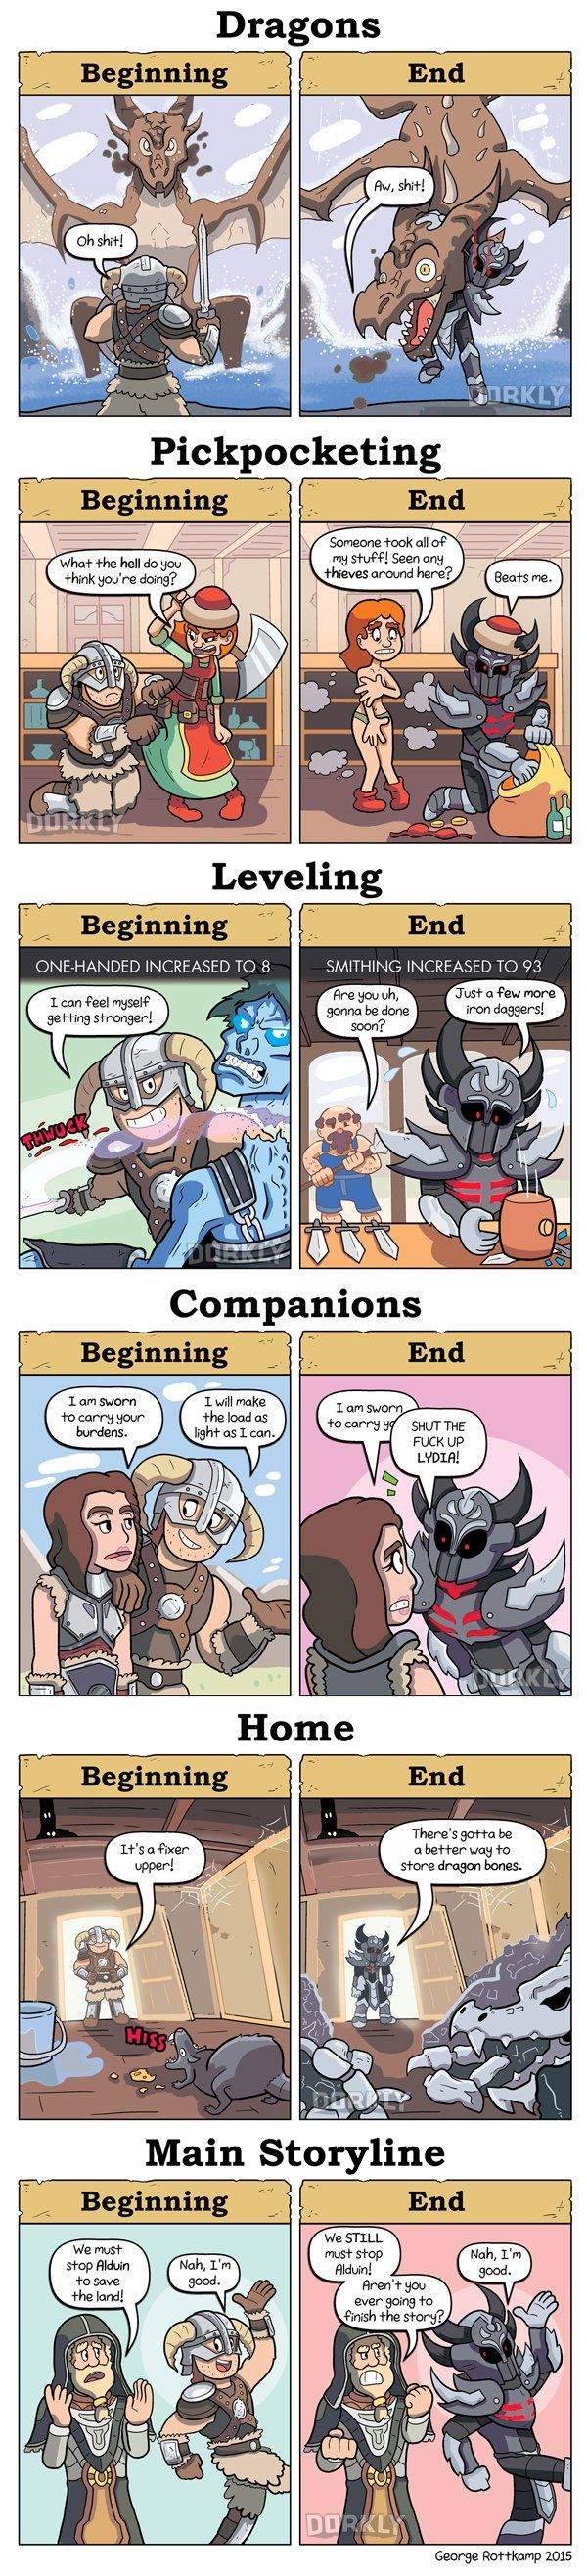 BrainDropping: Skyrim and Fallout beginning vs end!